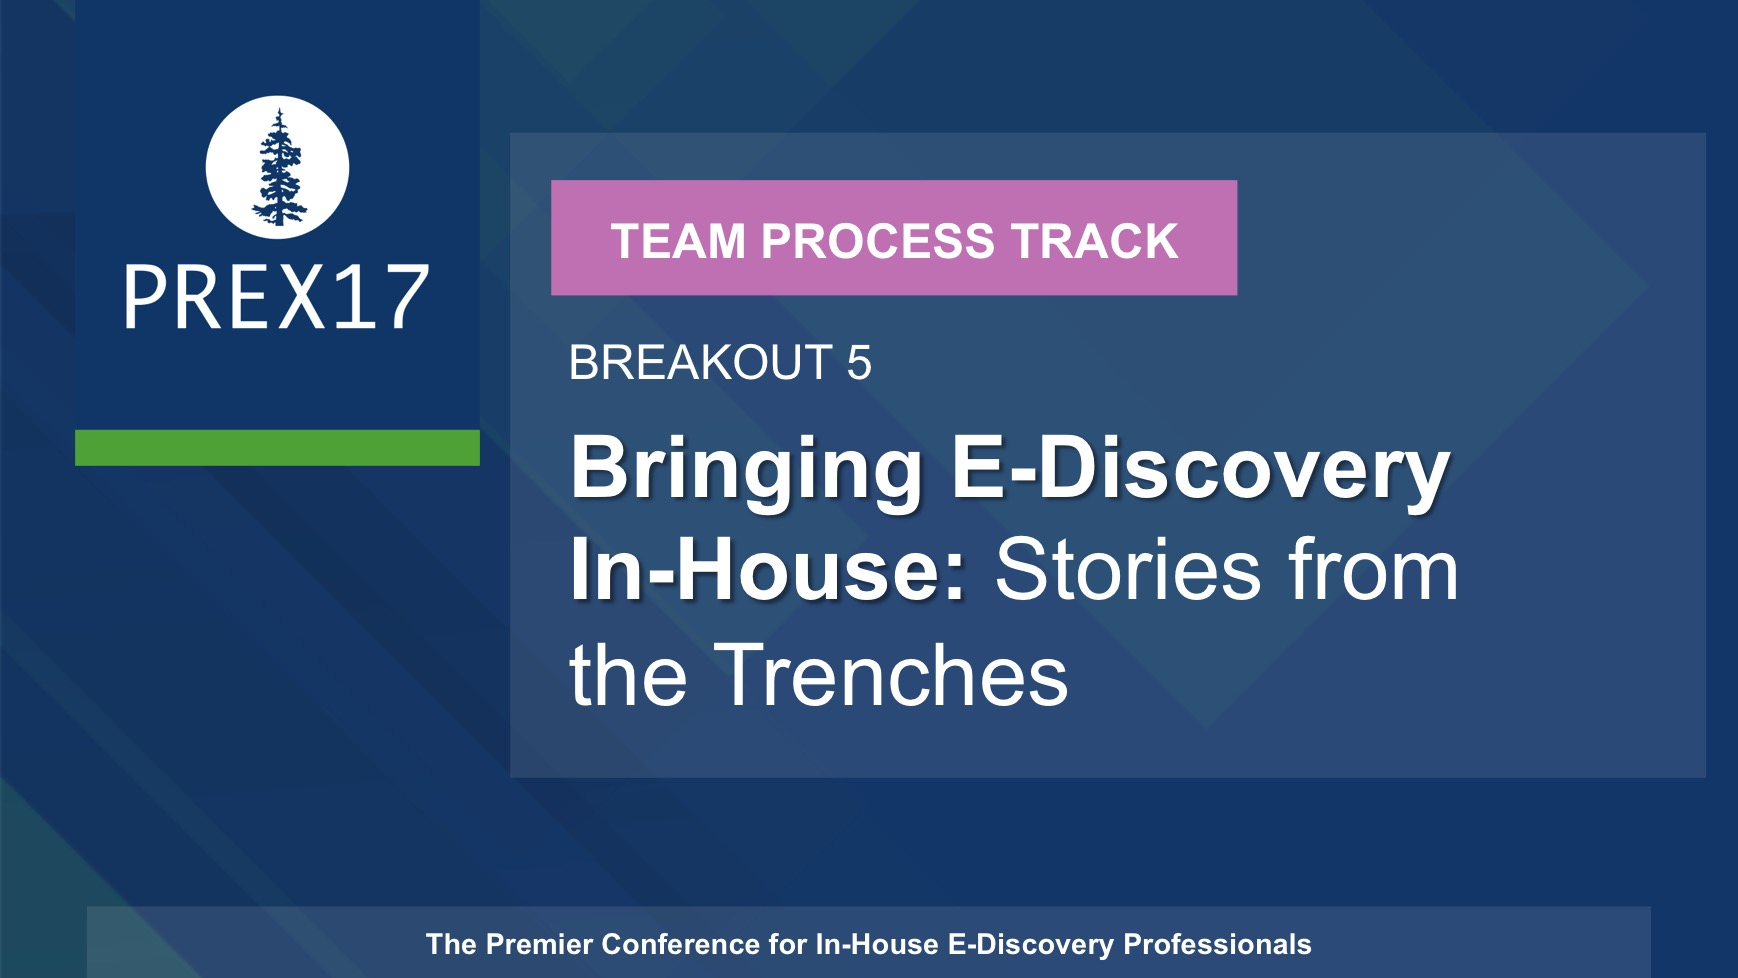 (Breakout 5 - Team Process) Bringing E-Discovery In-House: Stories from the Trenches